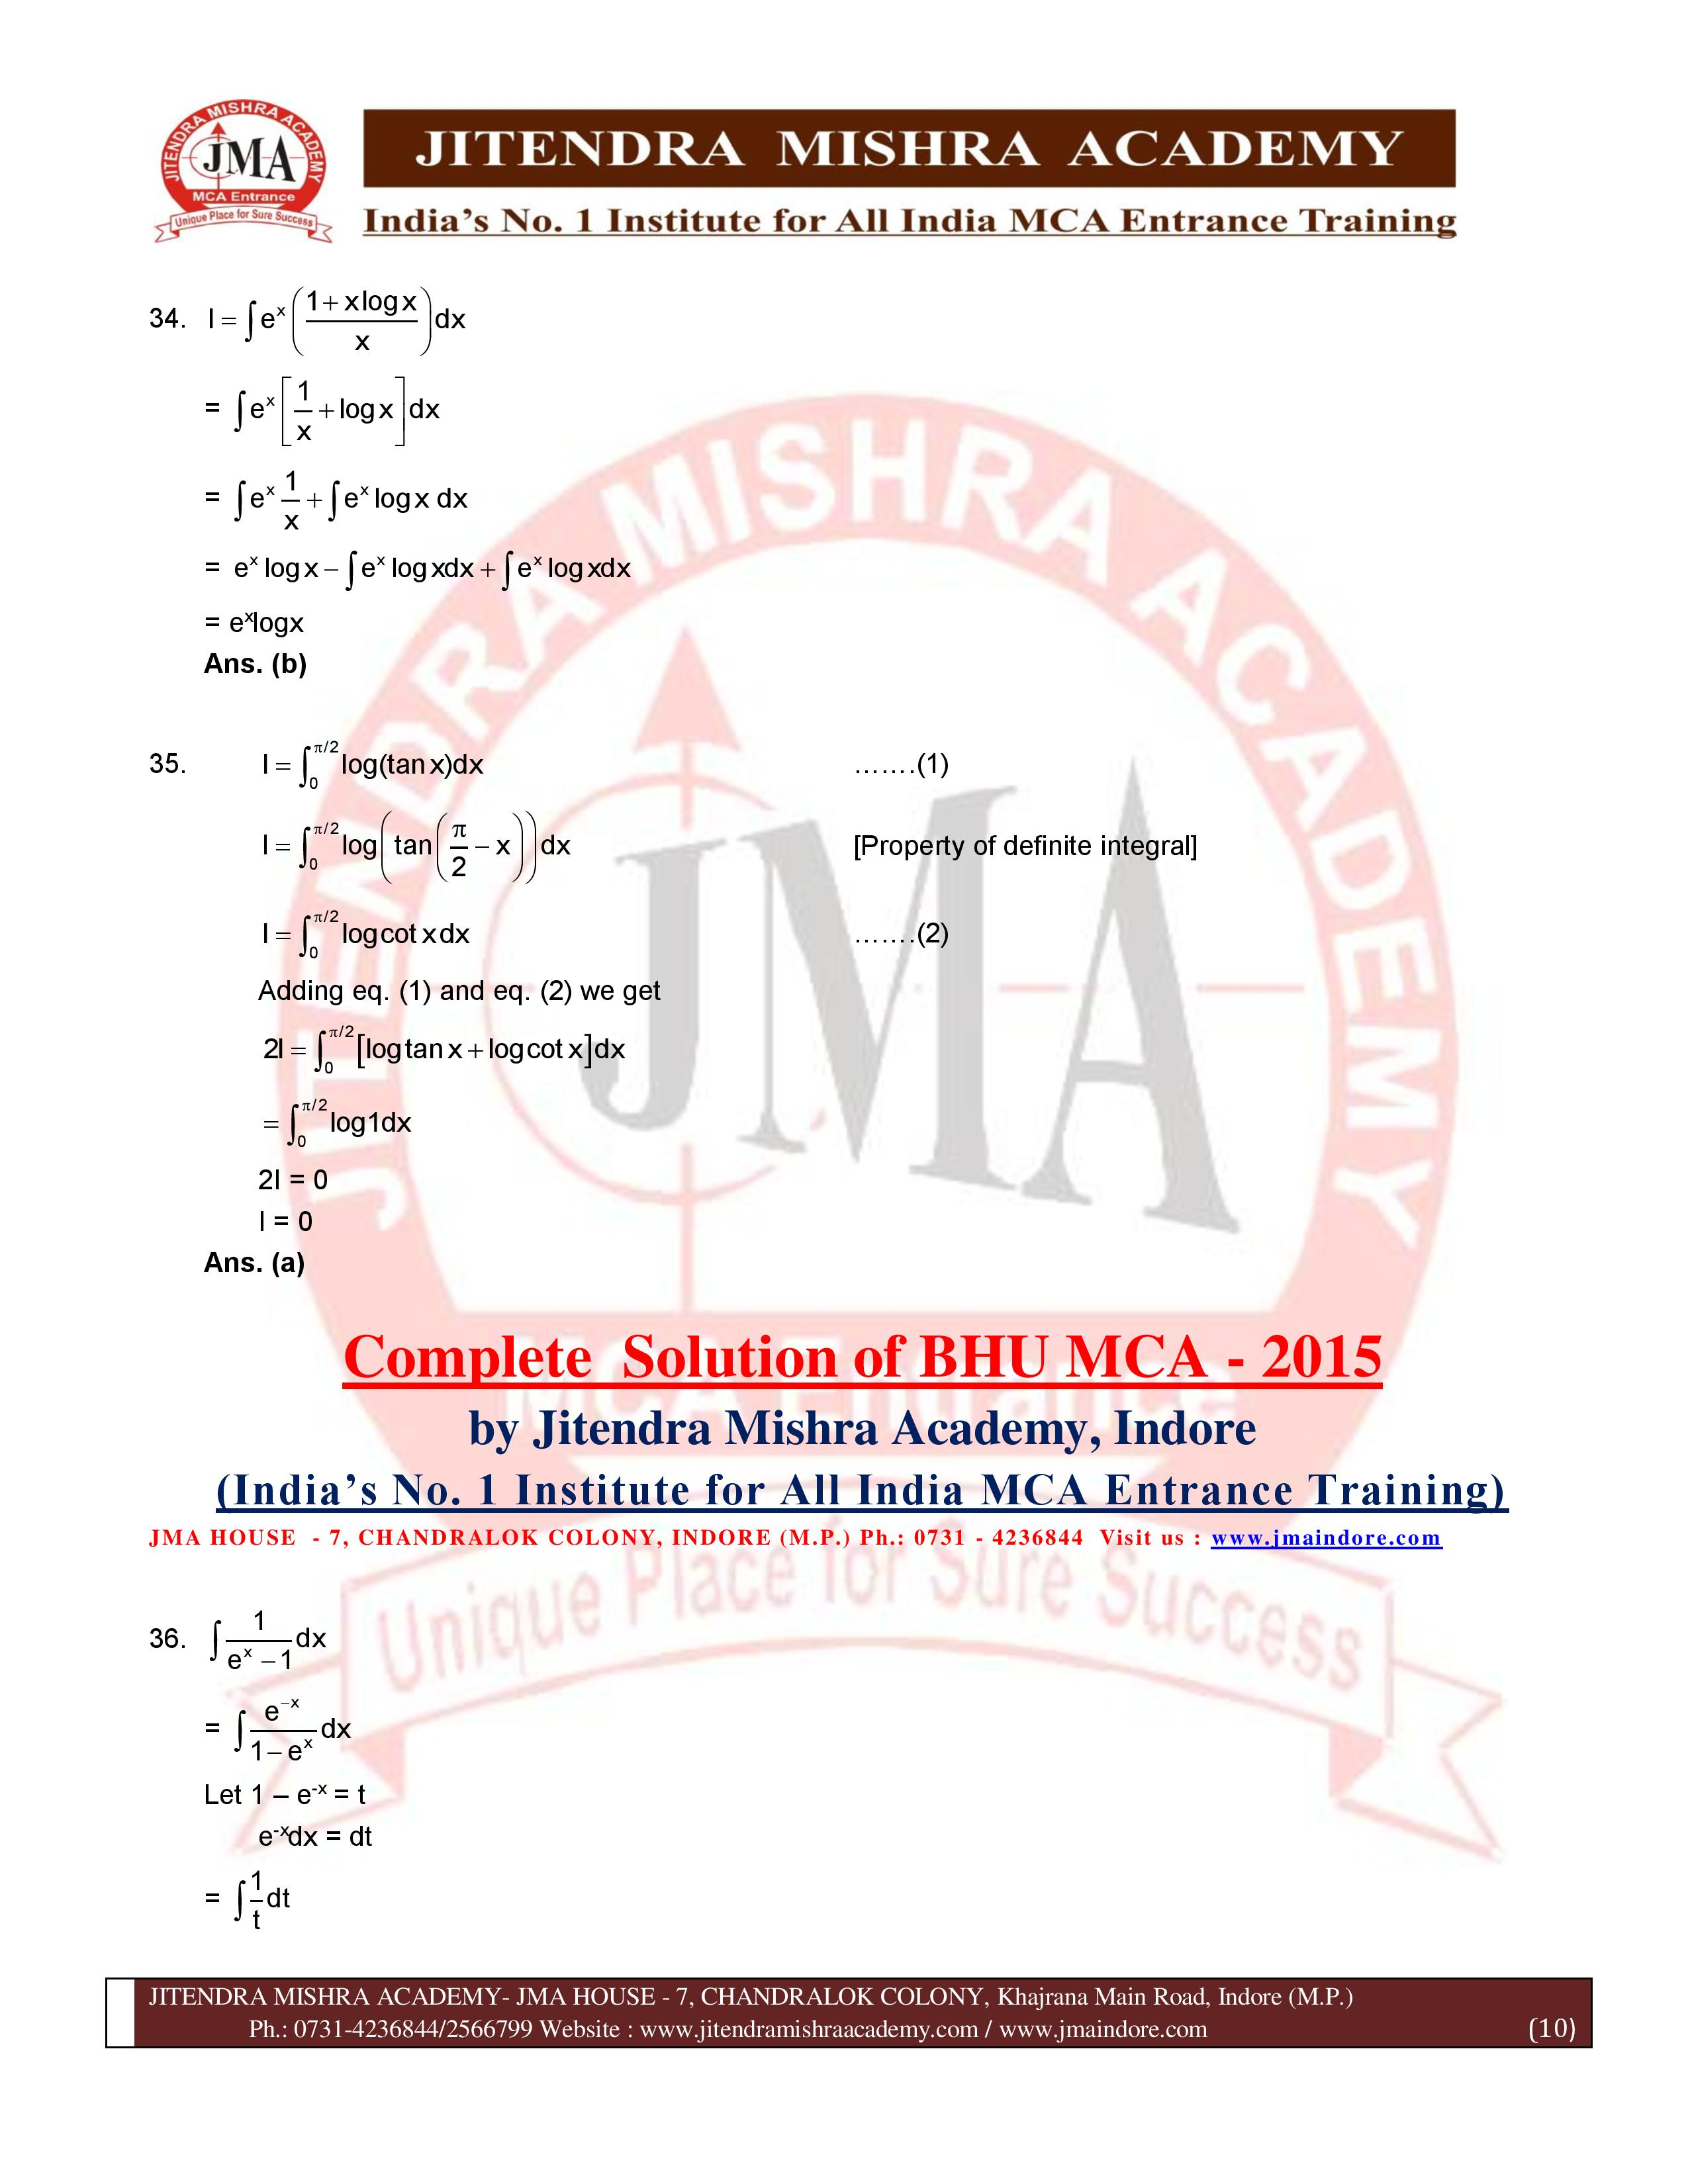 BHU 2015 SOLUTION (SET - 1) (29.06.16)-page-010